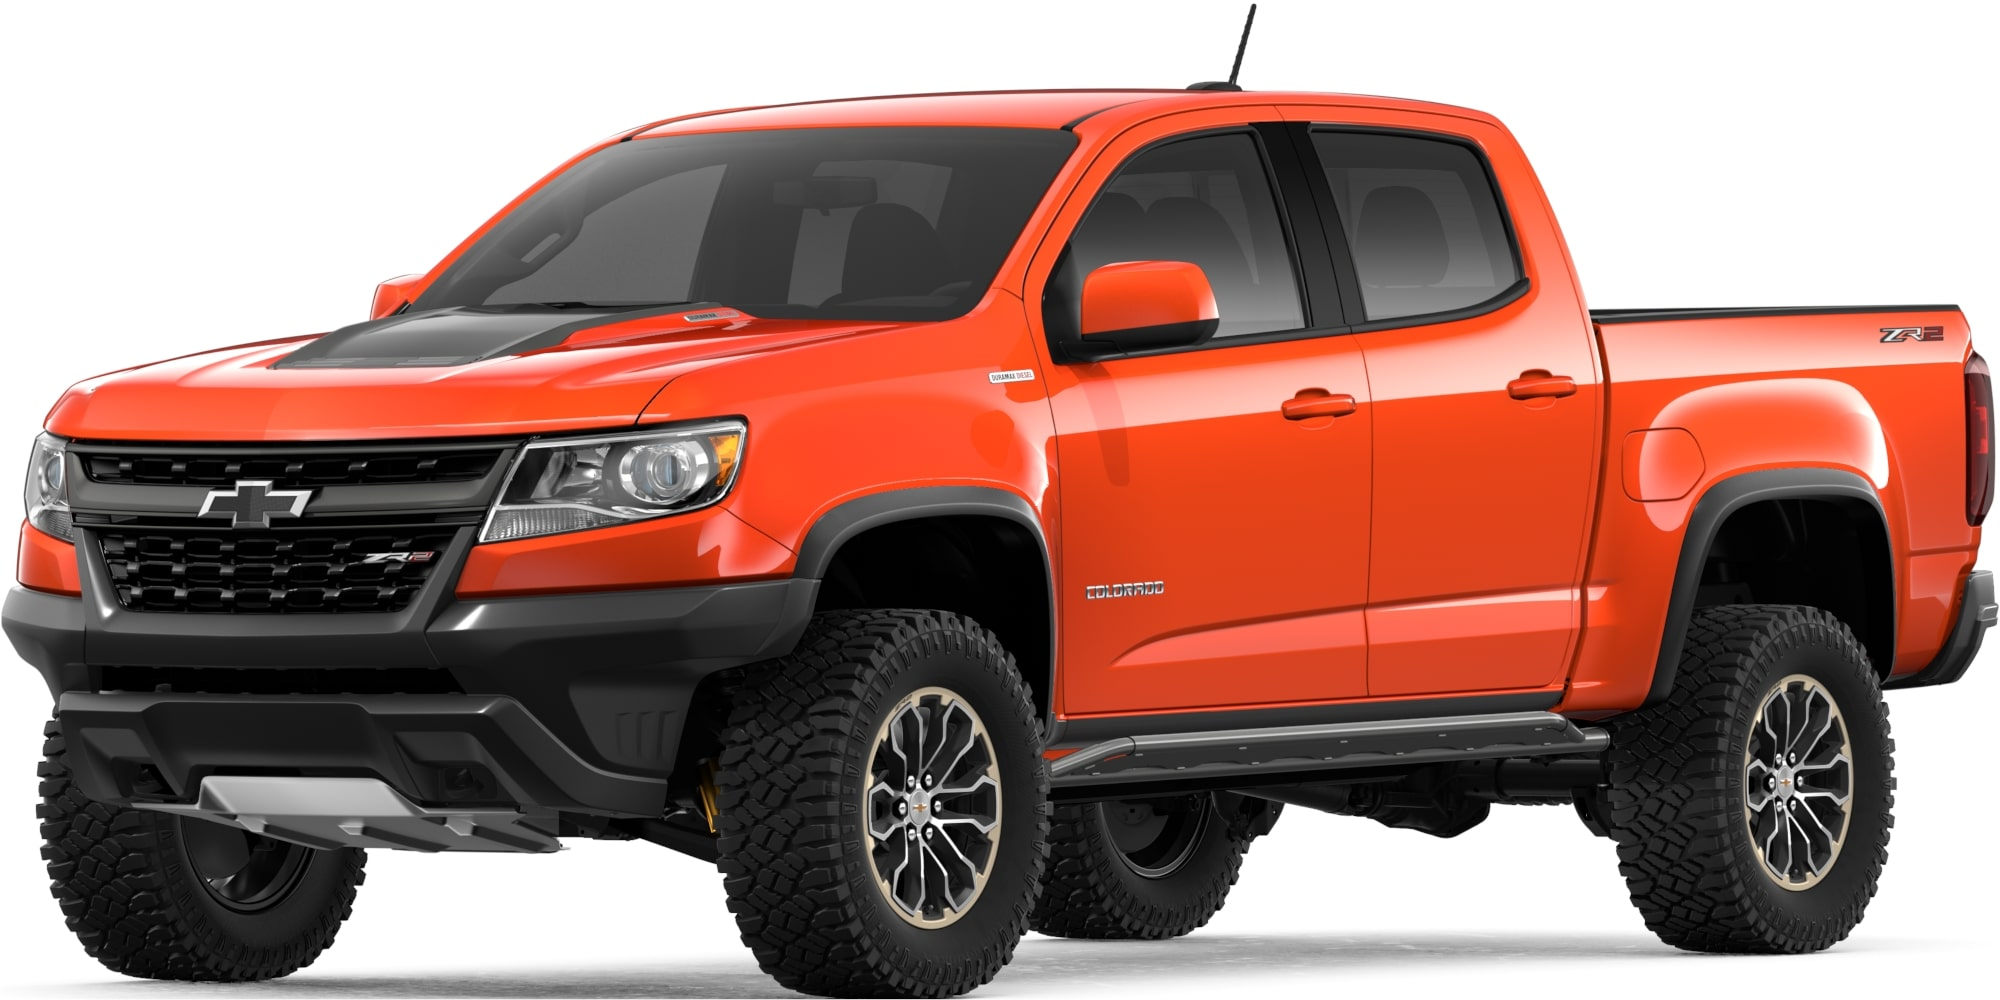 Chevy Zr2 Front Differential Diagram Electrical Wiring Diagrams 1989 Wrangler 4wd Vacuum Schematic Pirate4x4com 4x4 And Offroad 2019 Colorado Off Road Truck Diesel